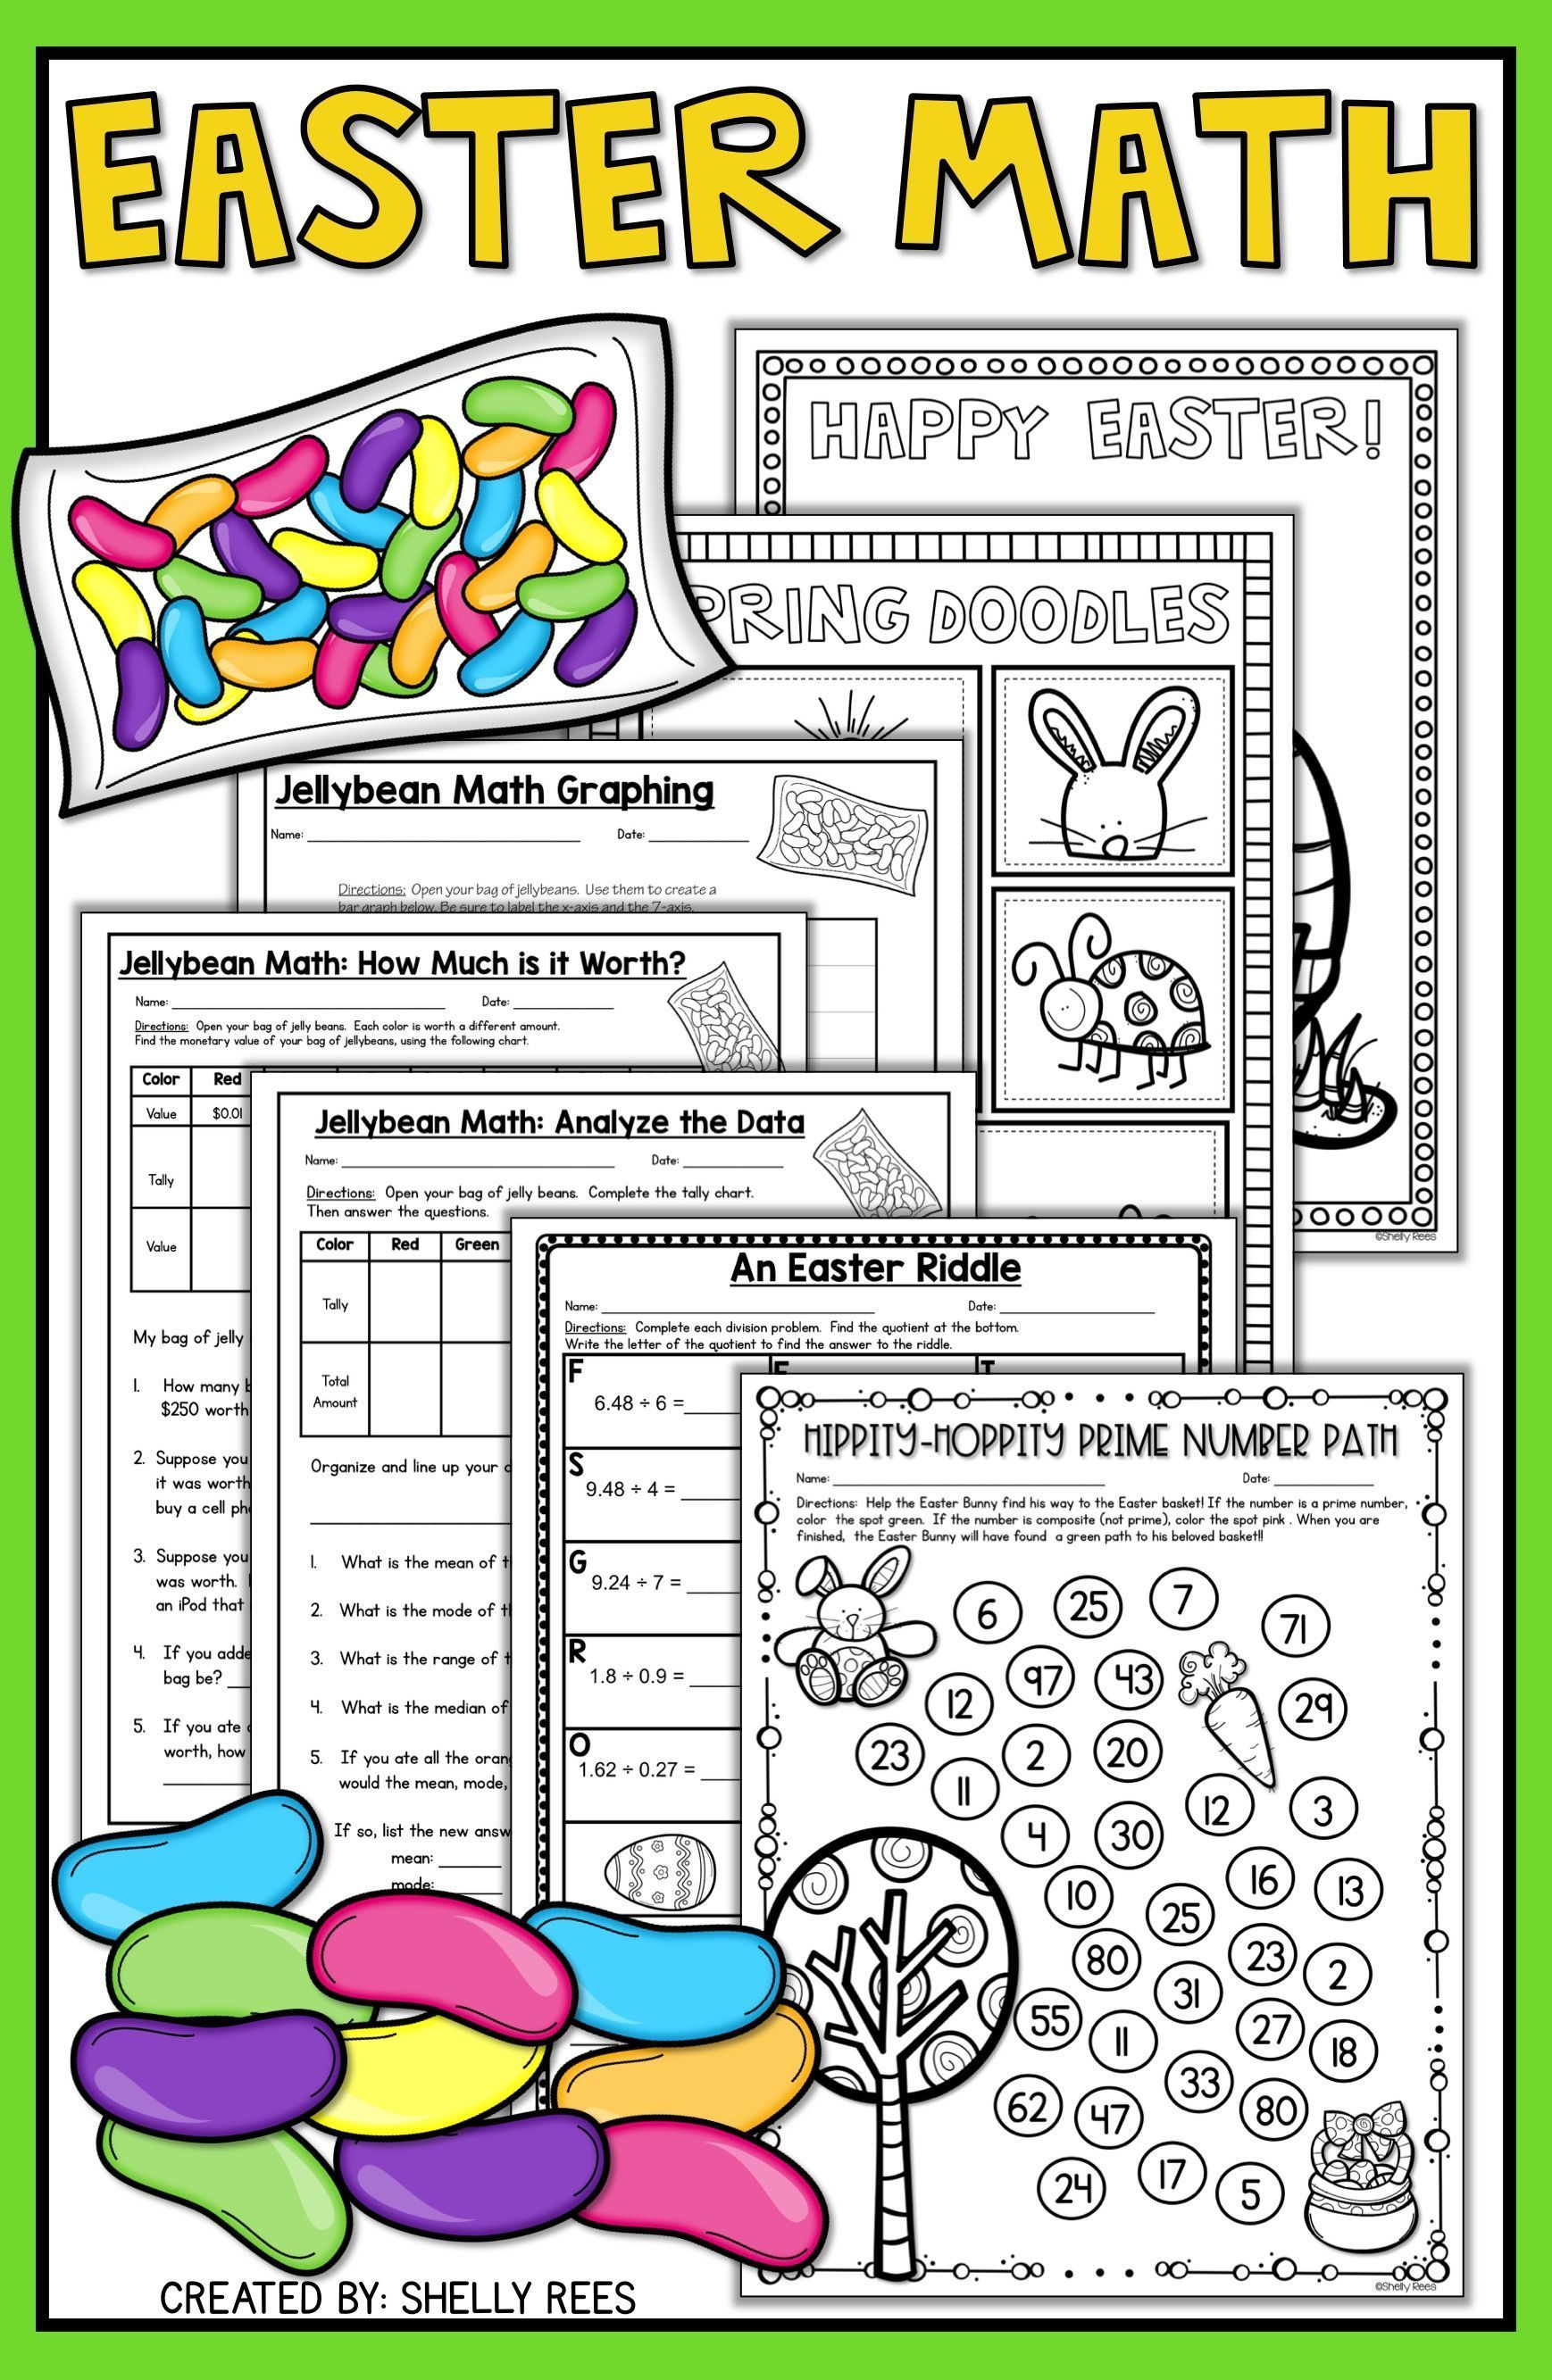 hight resolution of Easter math activities are fun for 3rd grade